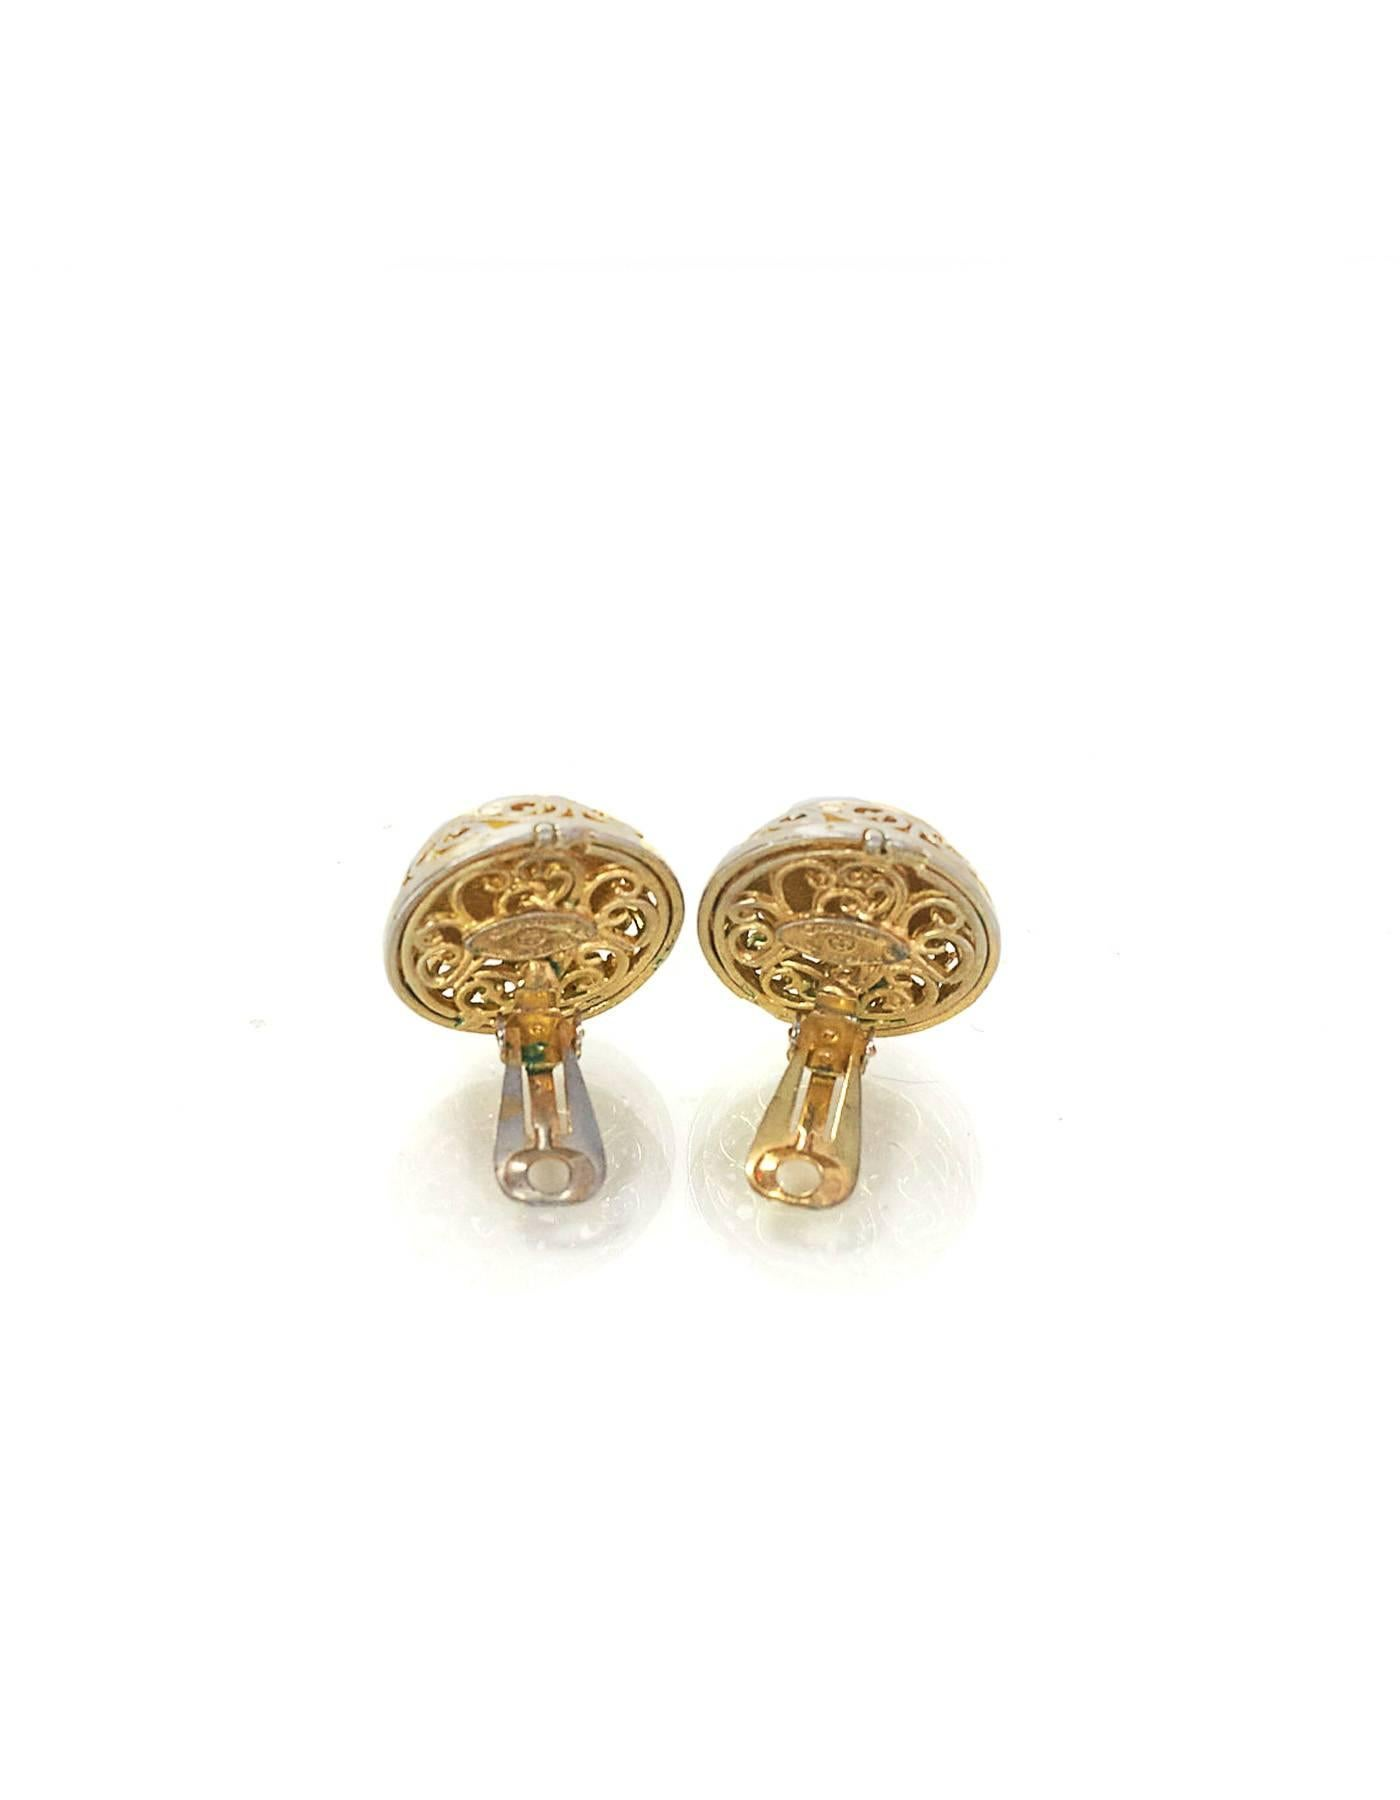 l quarter earring electra earrings garment clasp vivienne westwood